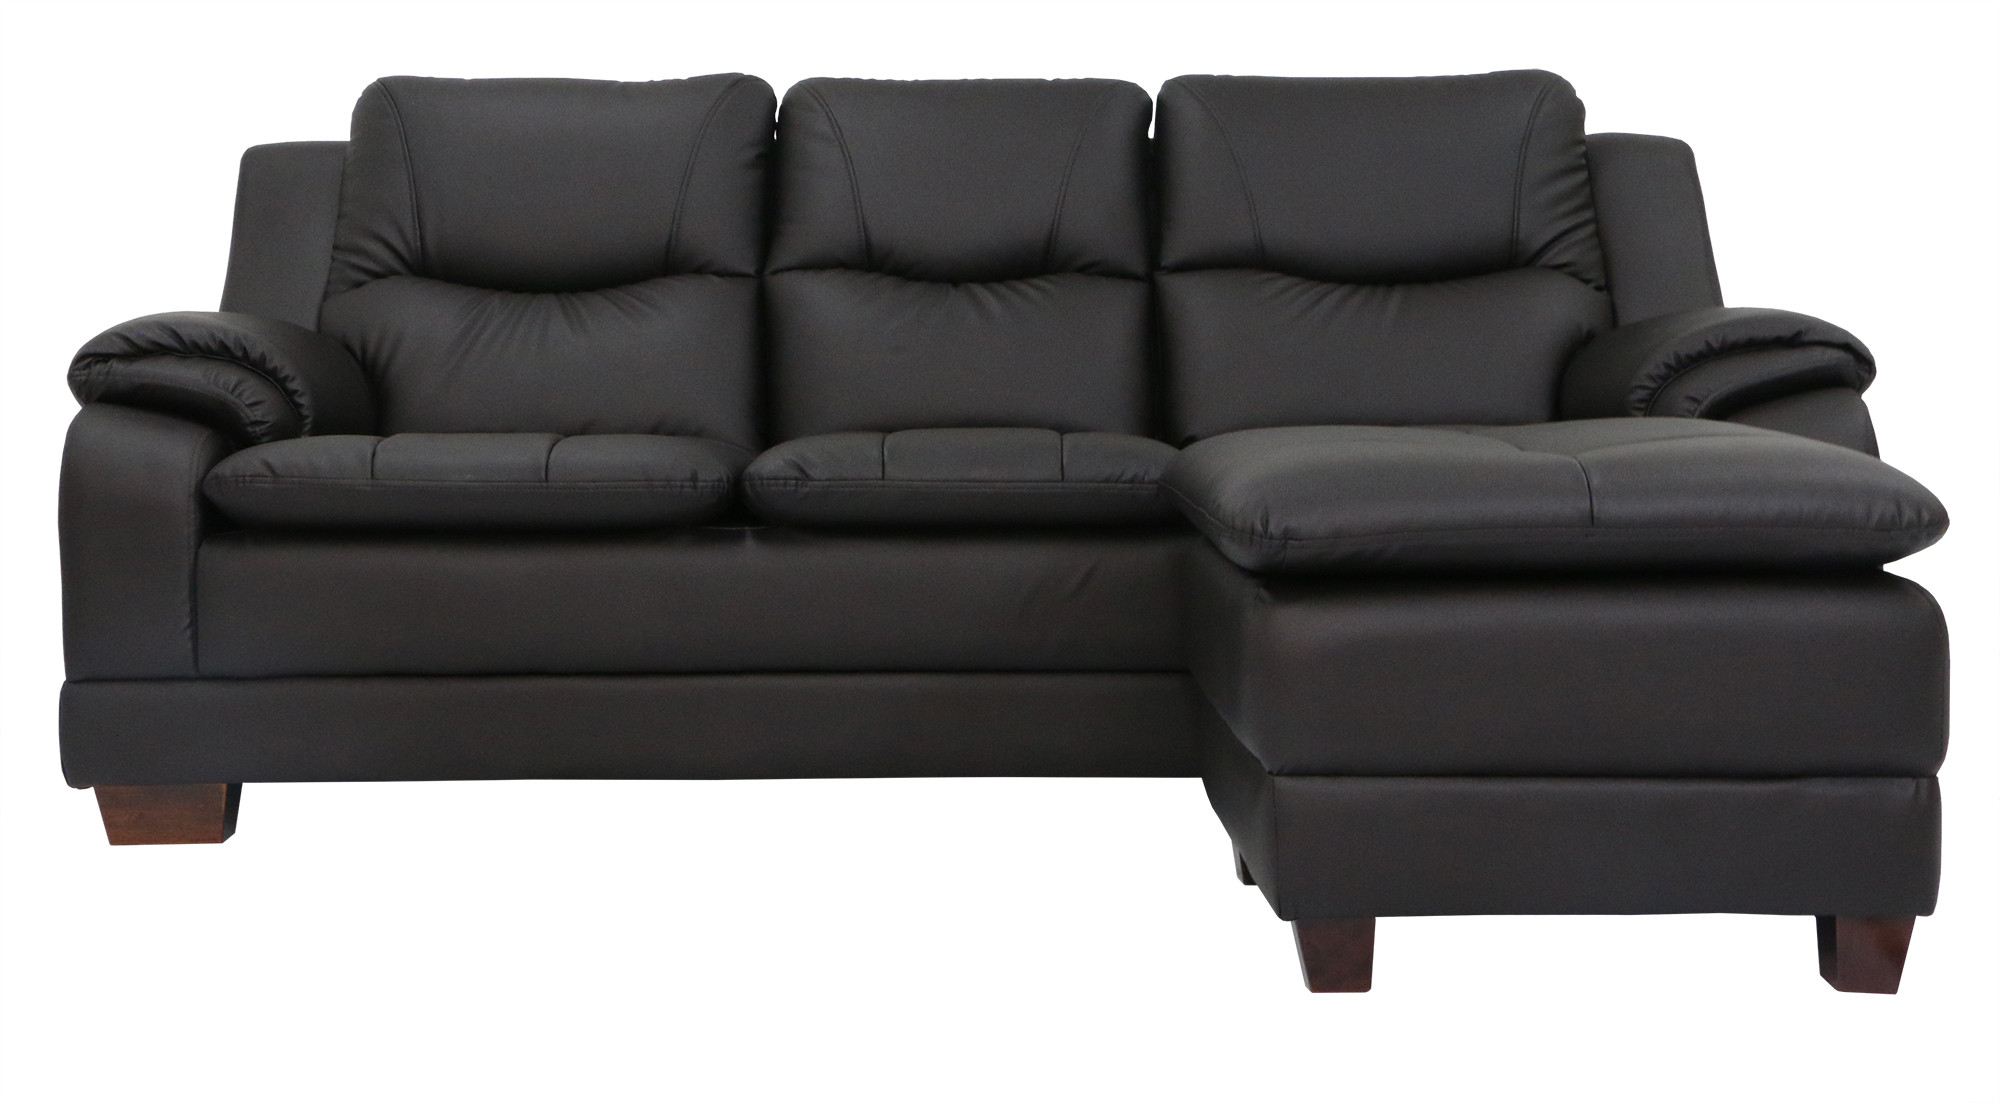 moods 3 seater leather sofa bed bonbon trading doc hadas with stool pvc furniture home decor fortytwo